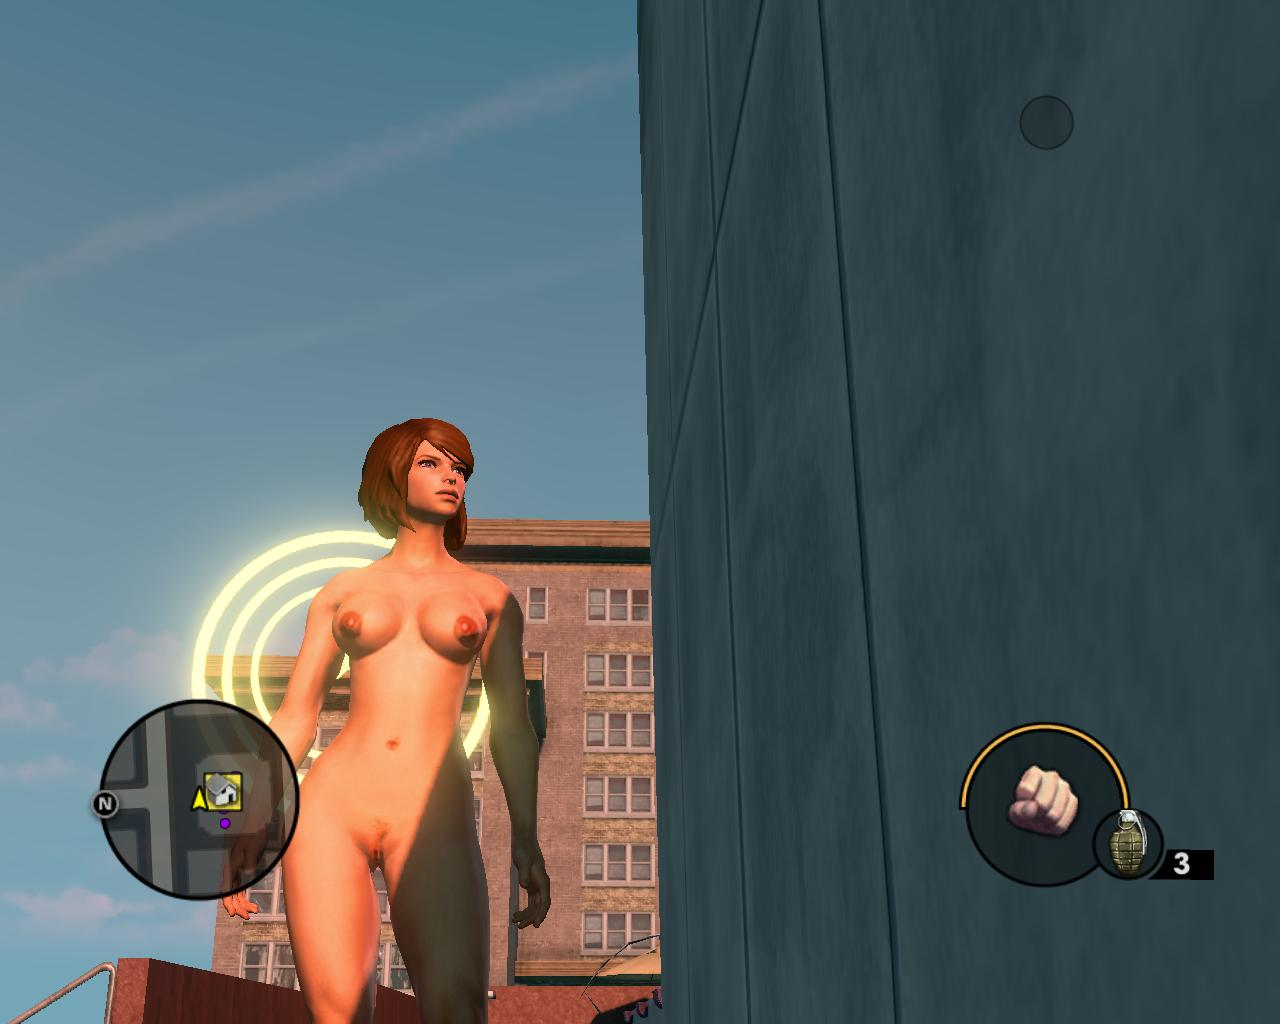 Saints row the third nude patch naked picture